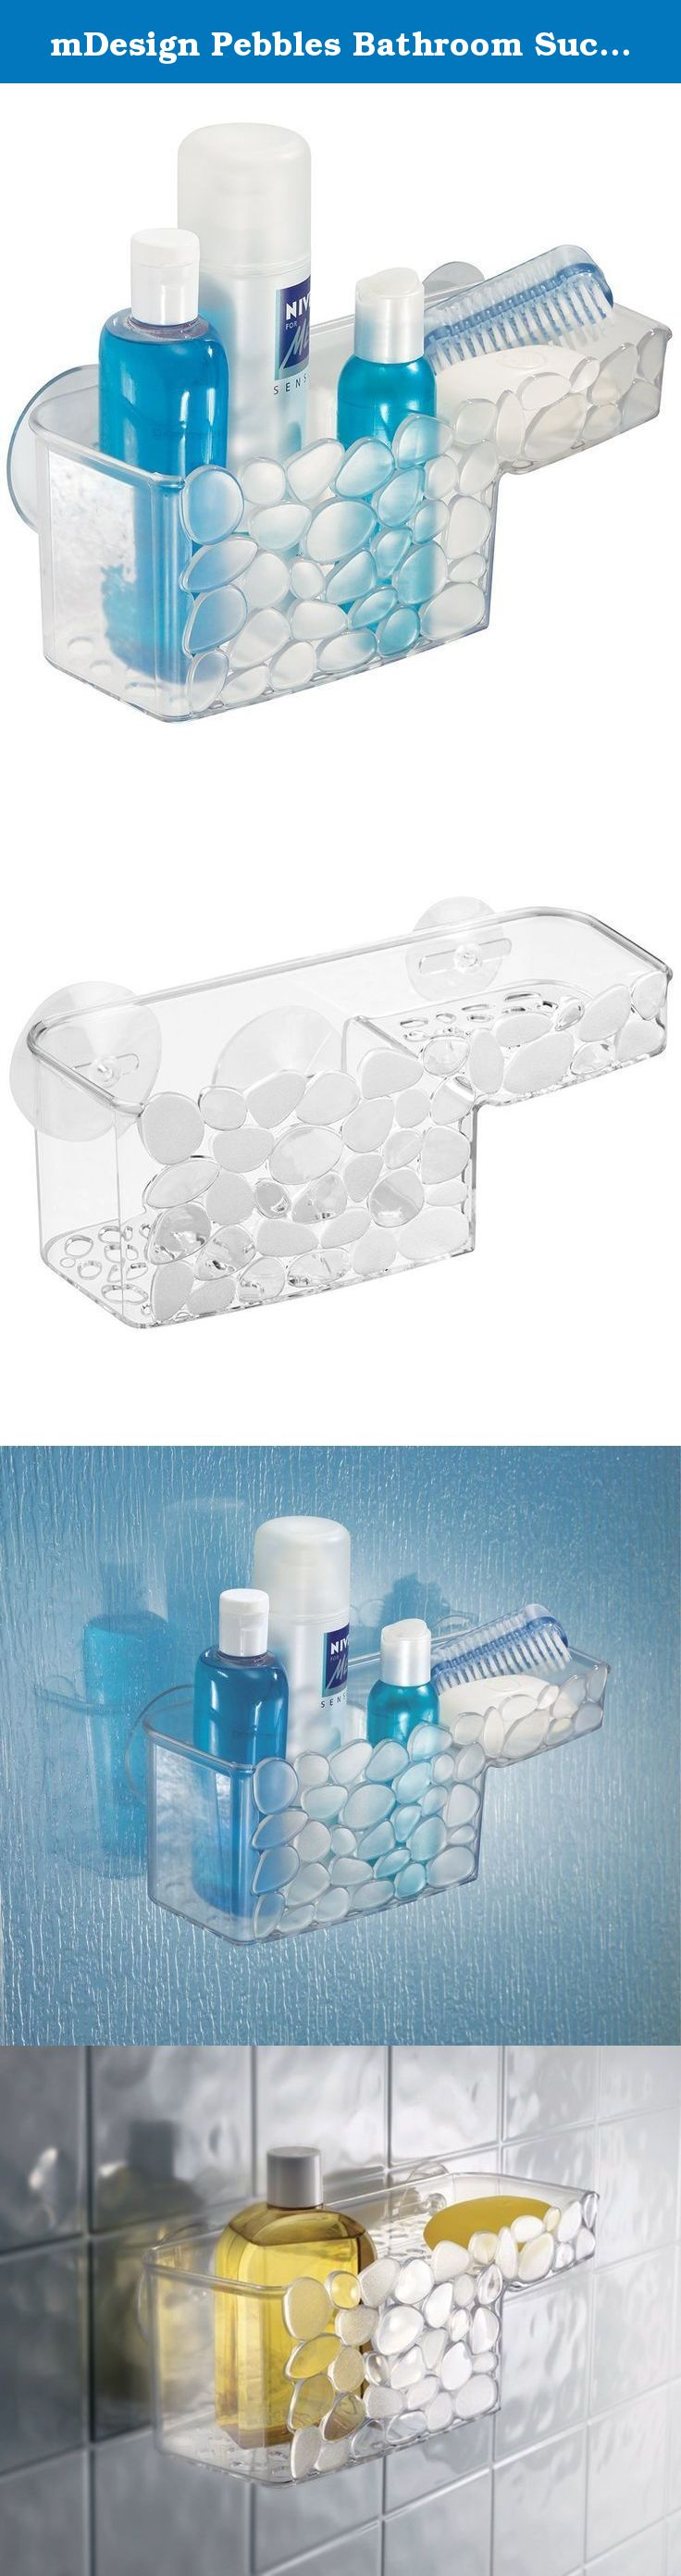 Colorful Inter Over The Door Shower Caddy Embellishment - Bathtub ...